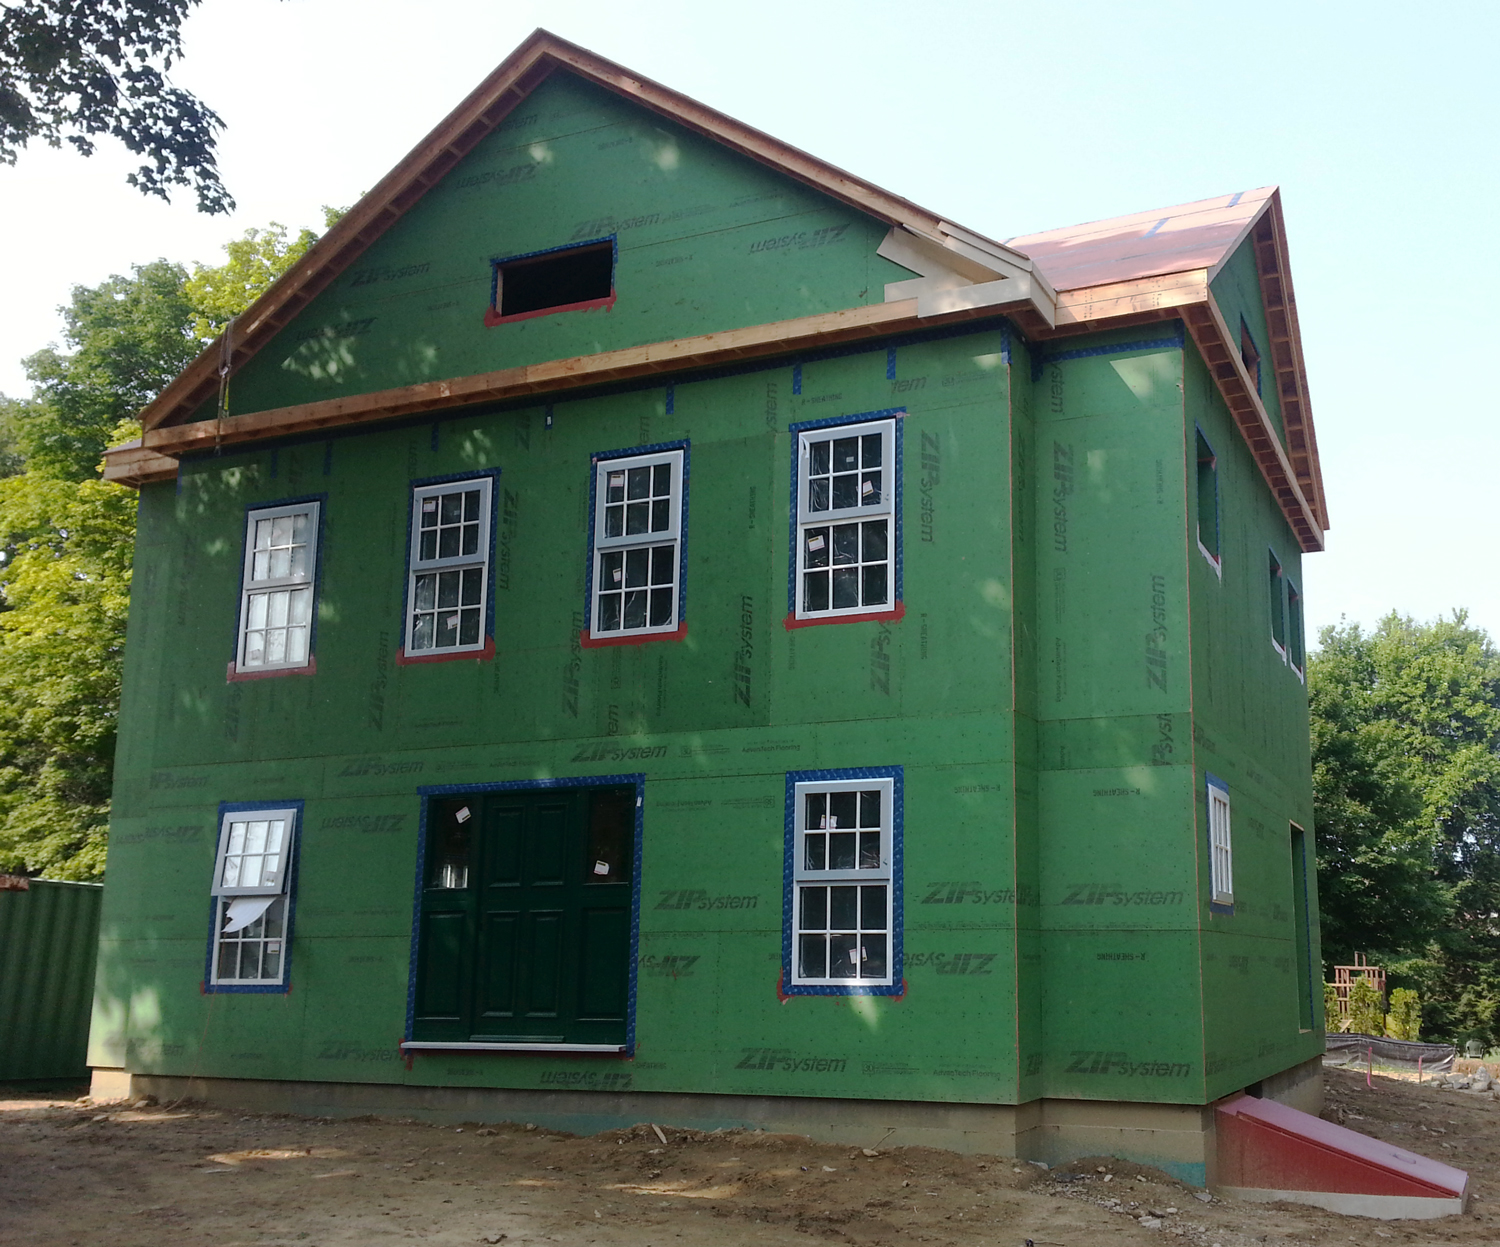 hight resolution of building a new house to be energy efficient is a no brainer but does upgrading an older home make financial sense